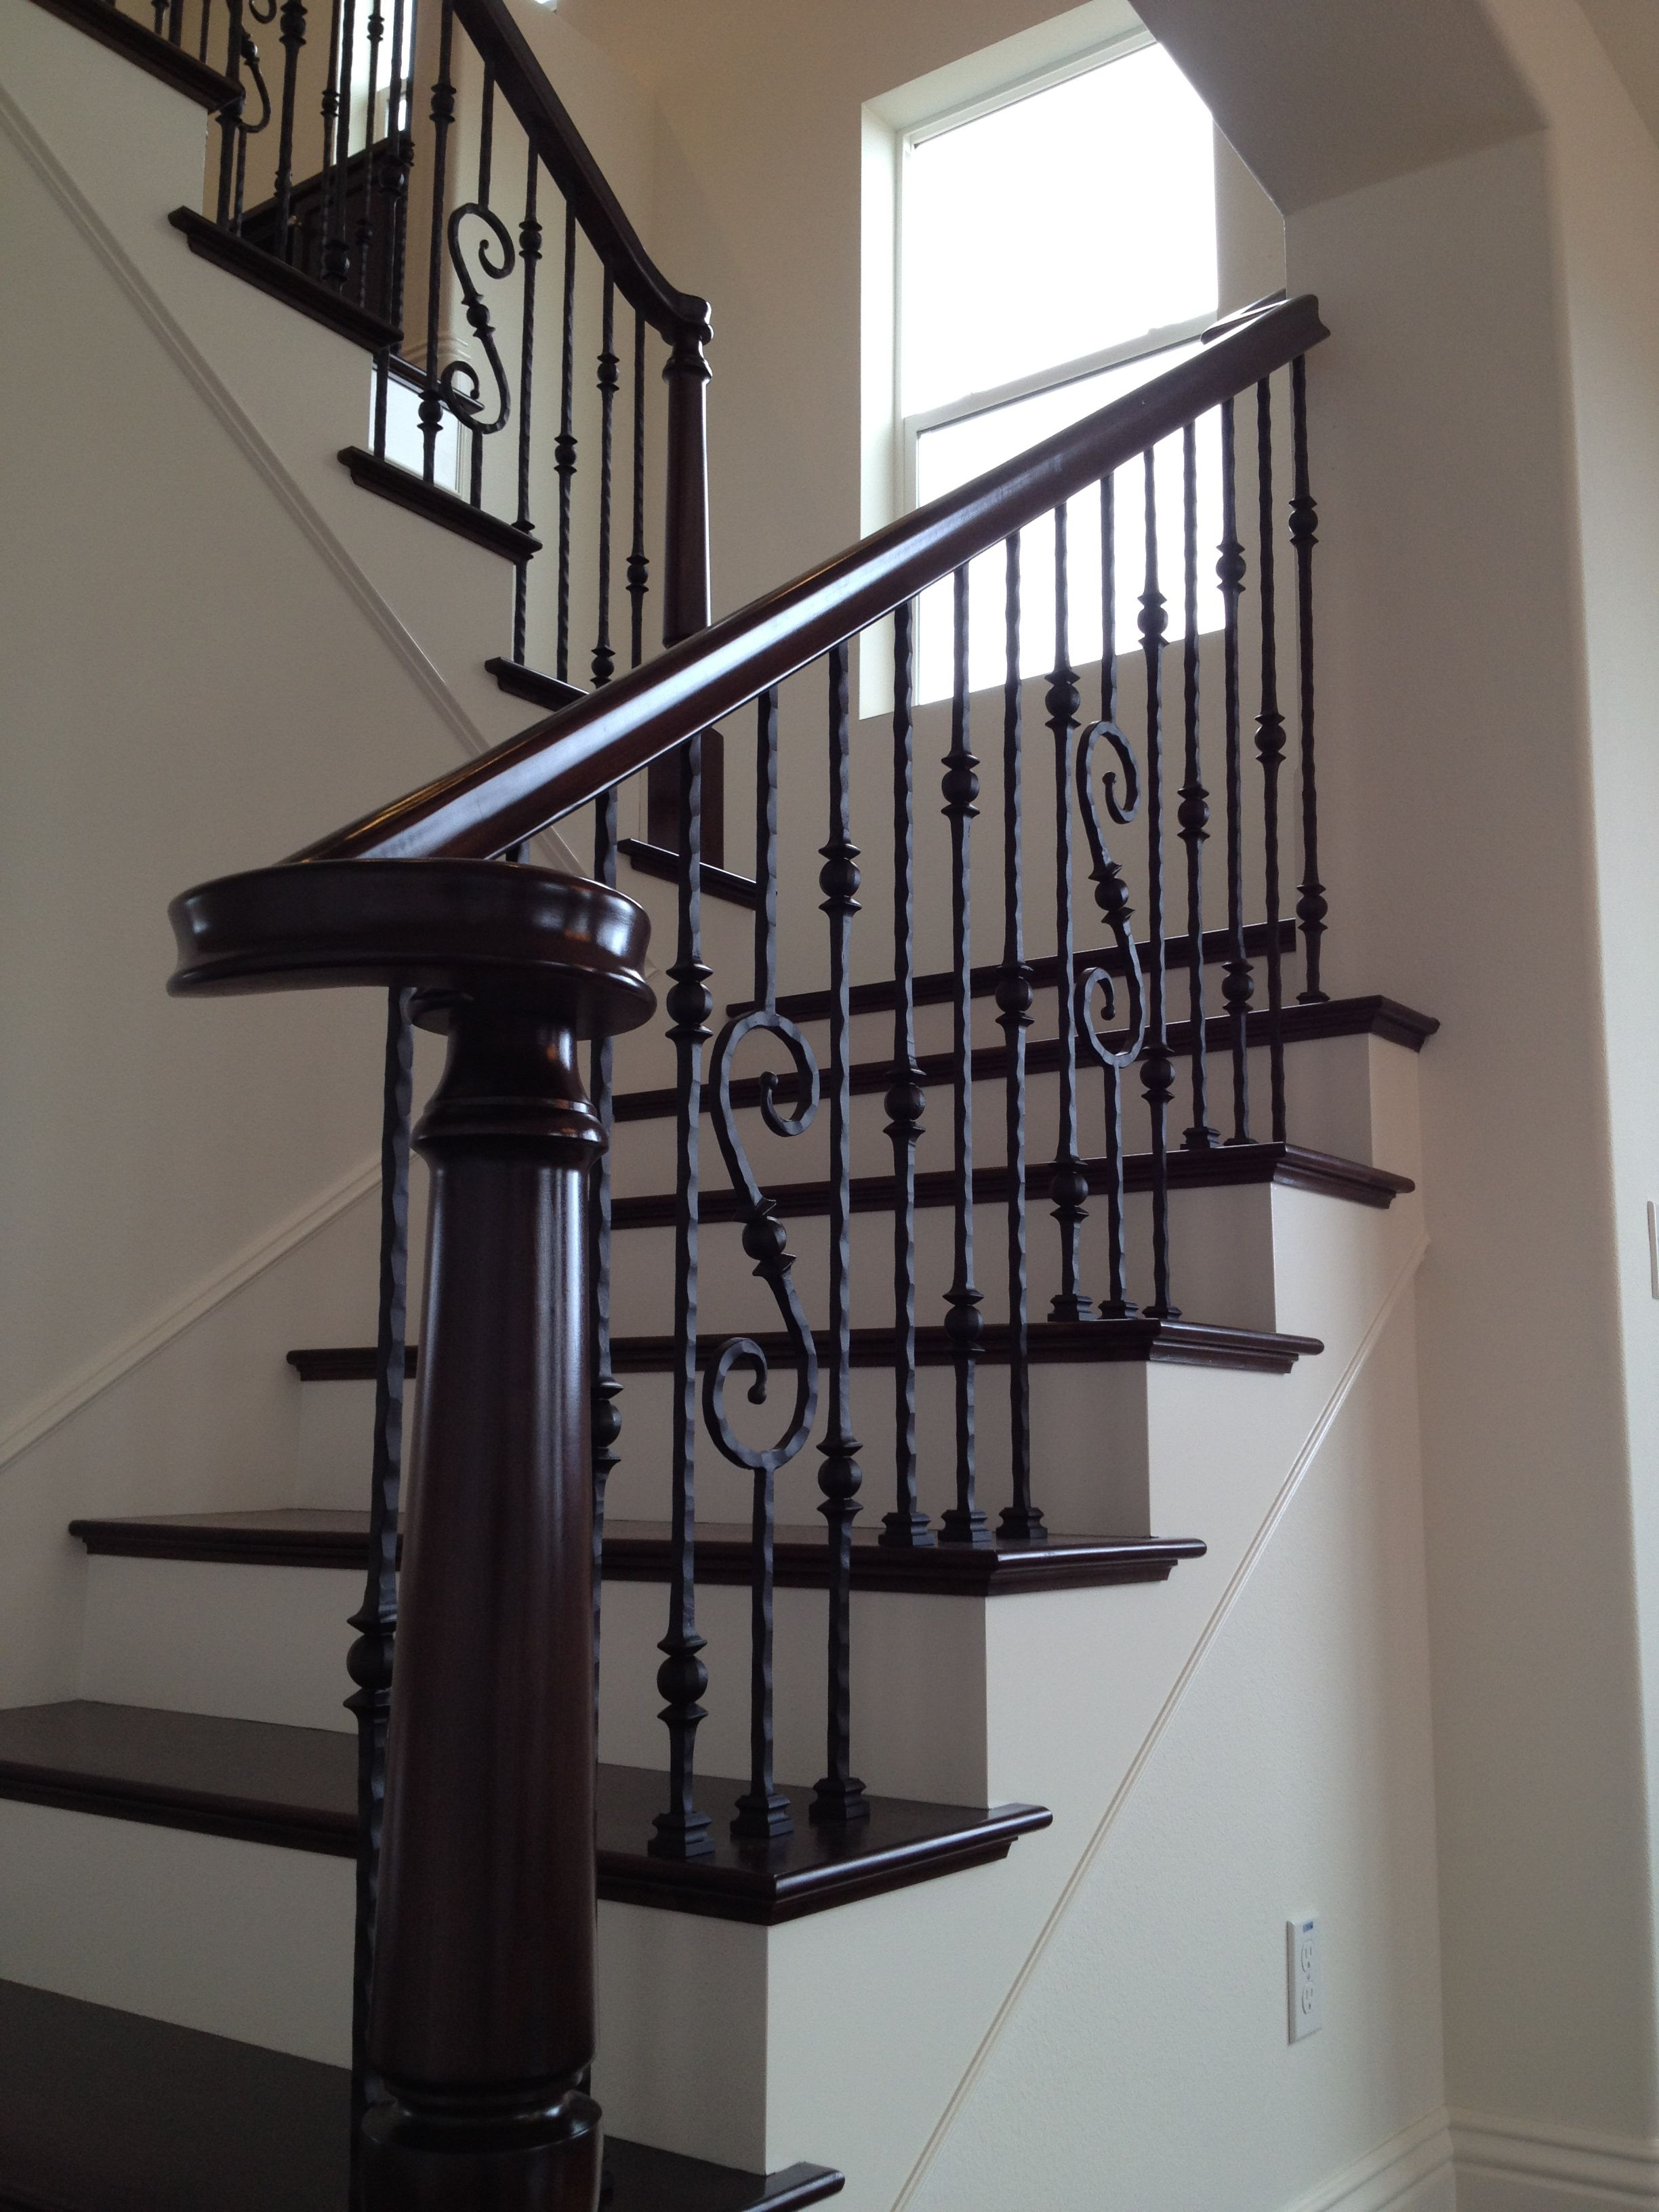 Dark Floors Wrought Iron Stairs Iron Stair Railing Stair Railing Design Wrought Iron Stair Railing